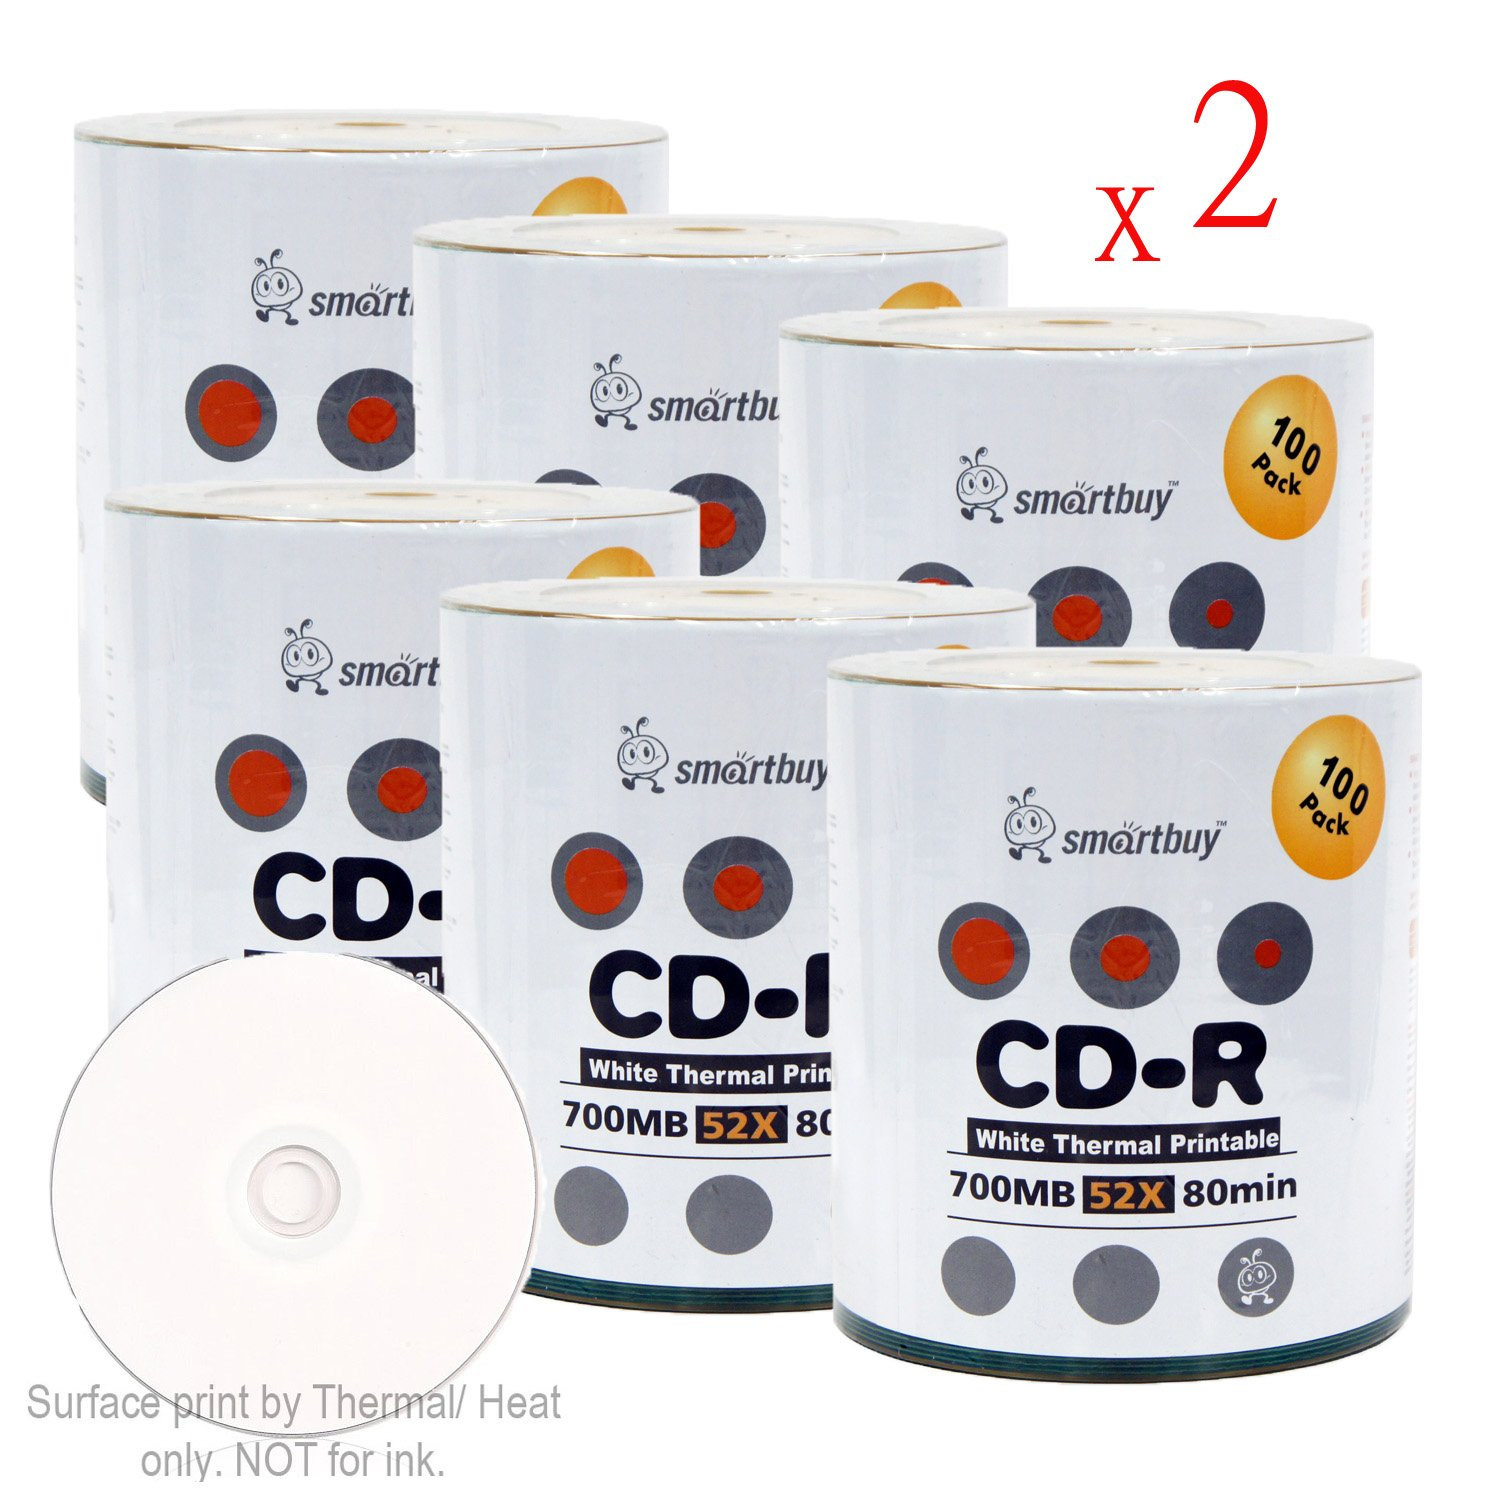 Smart Buy CD-R 1200 Pack 700mb 52x Thermal Printable White Blank Recordable Discs, 1200 Disc, 1200pk